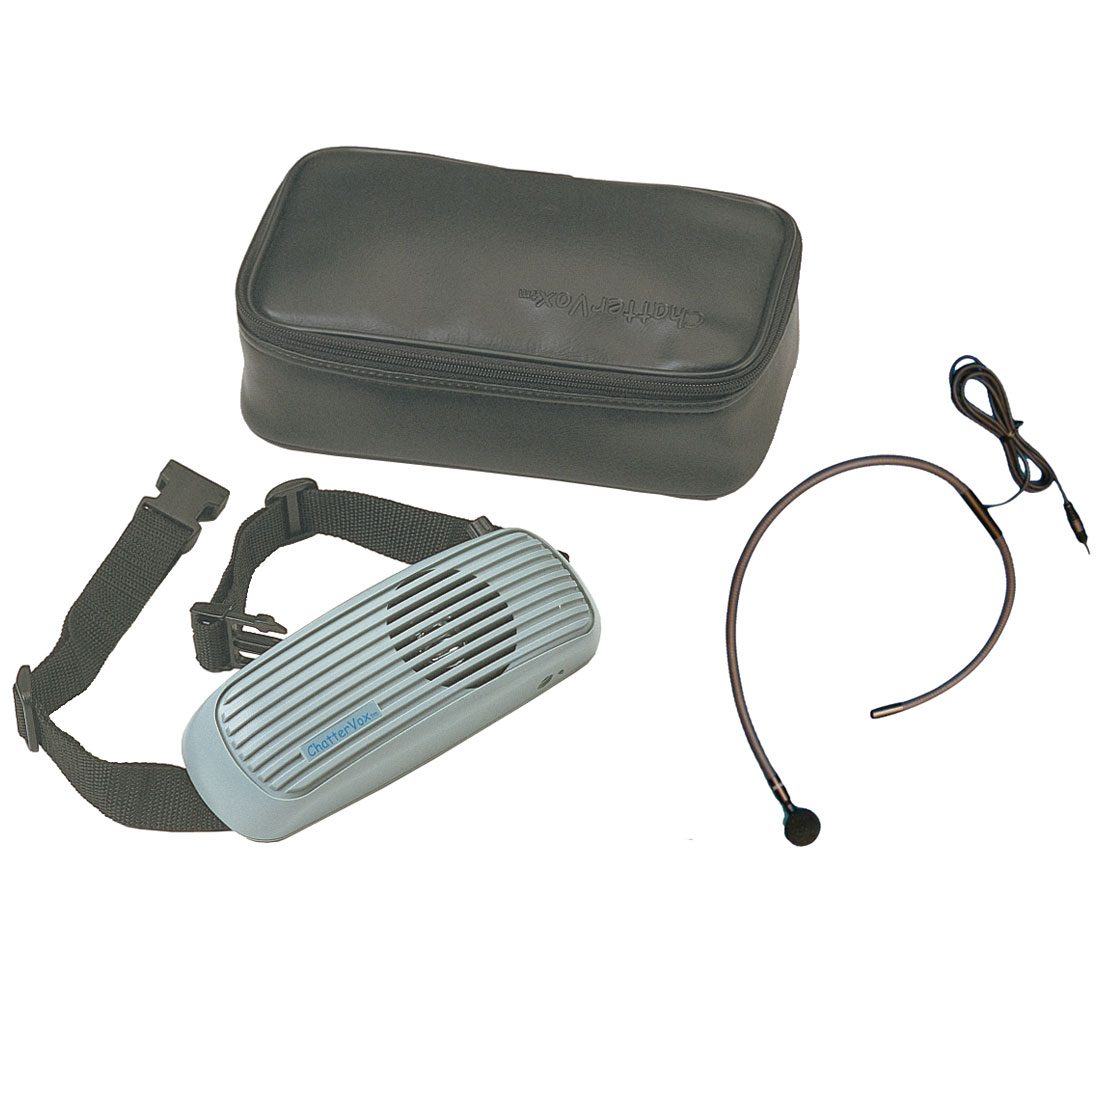 ChatterVOX Pro Voice Amplifier with Collar Mic